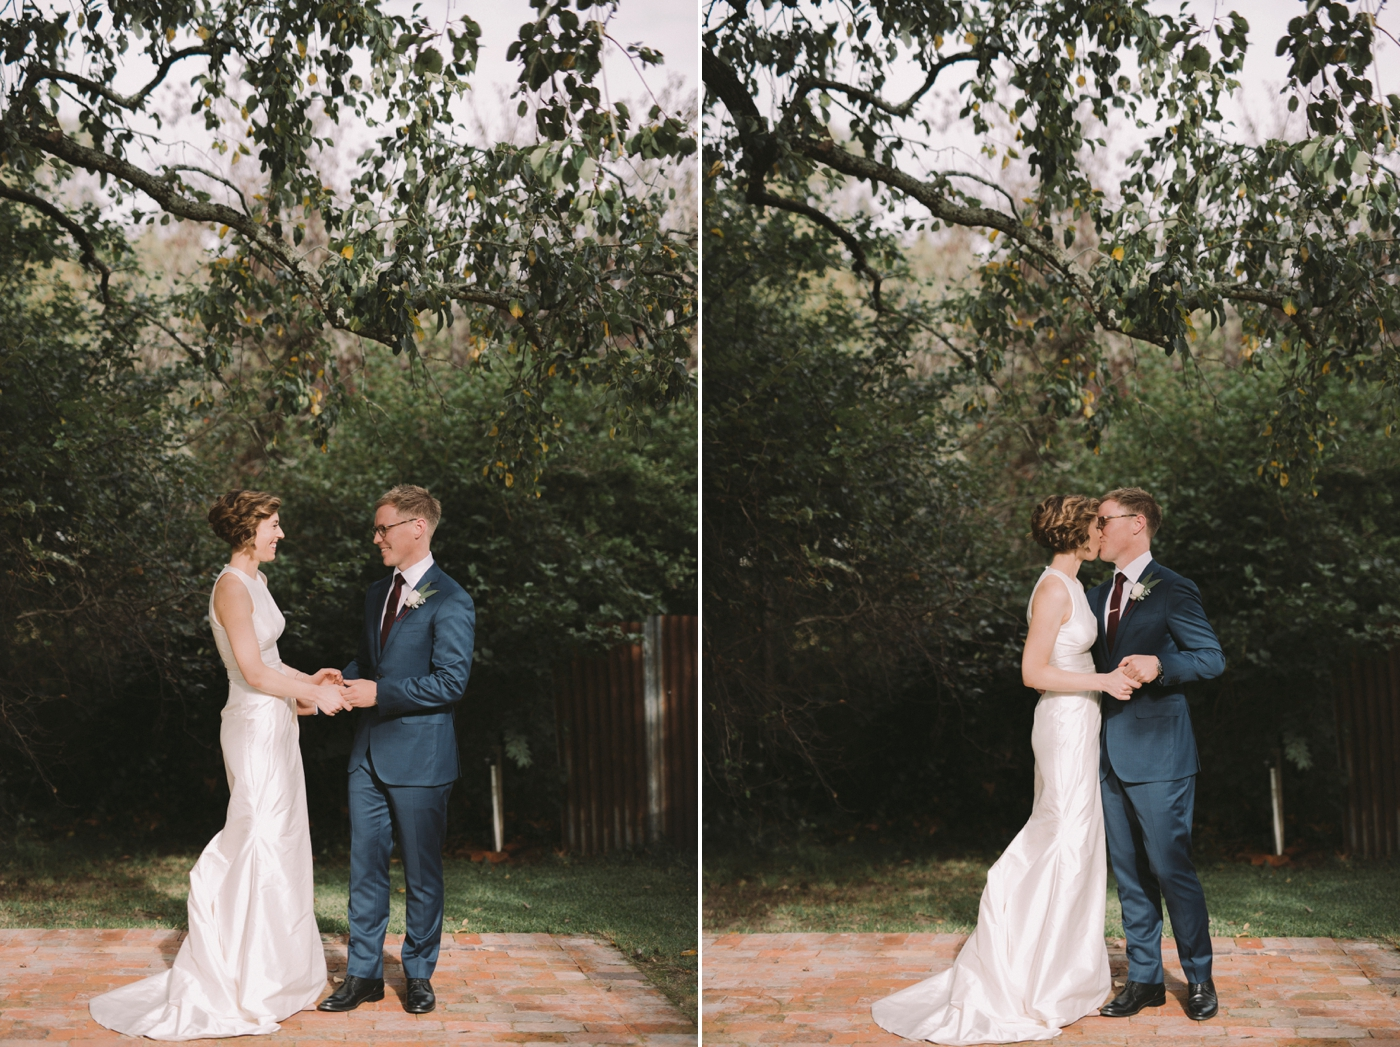 Liam & Bec - White House Adelaide Hills Wedding - Natural Wedding Photography in Adelaide - www.katherineschultzphotography.com 39